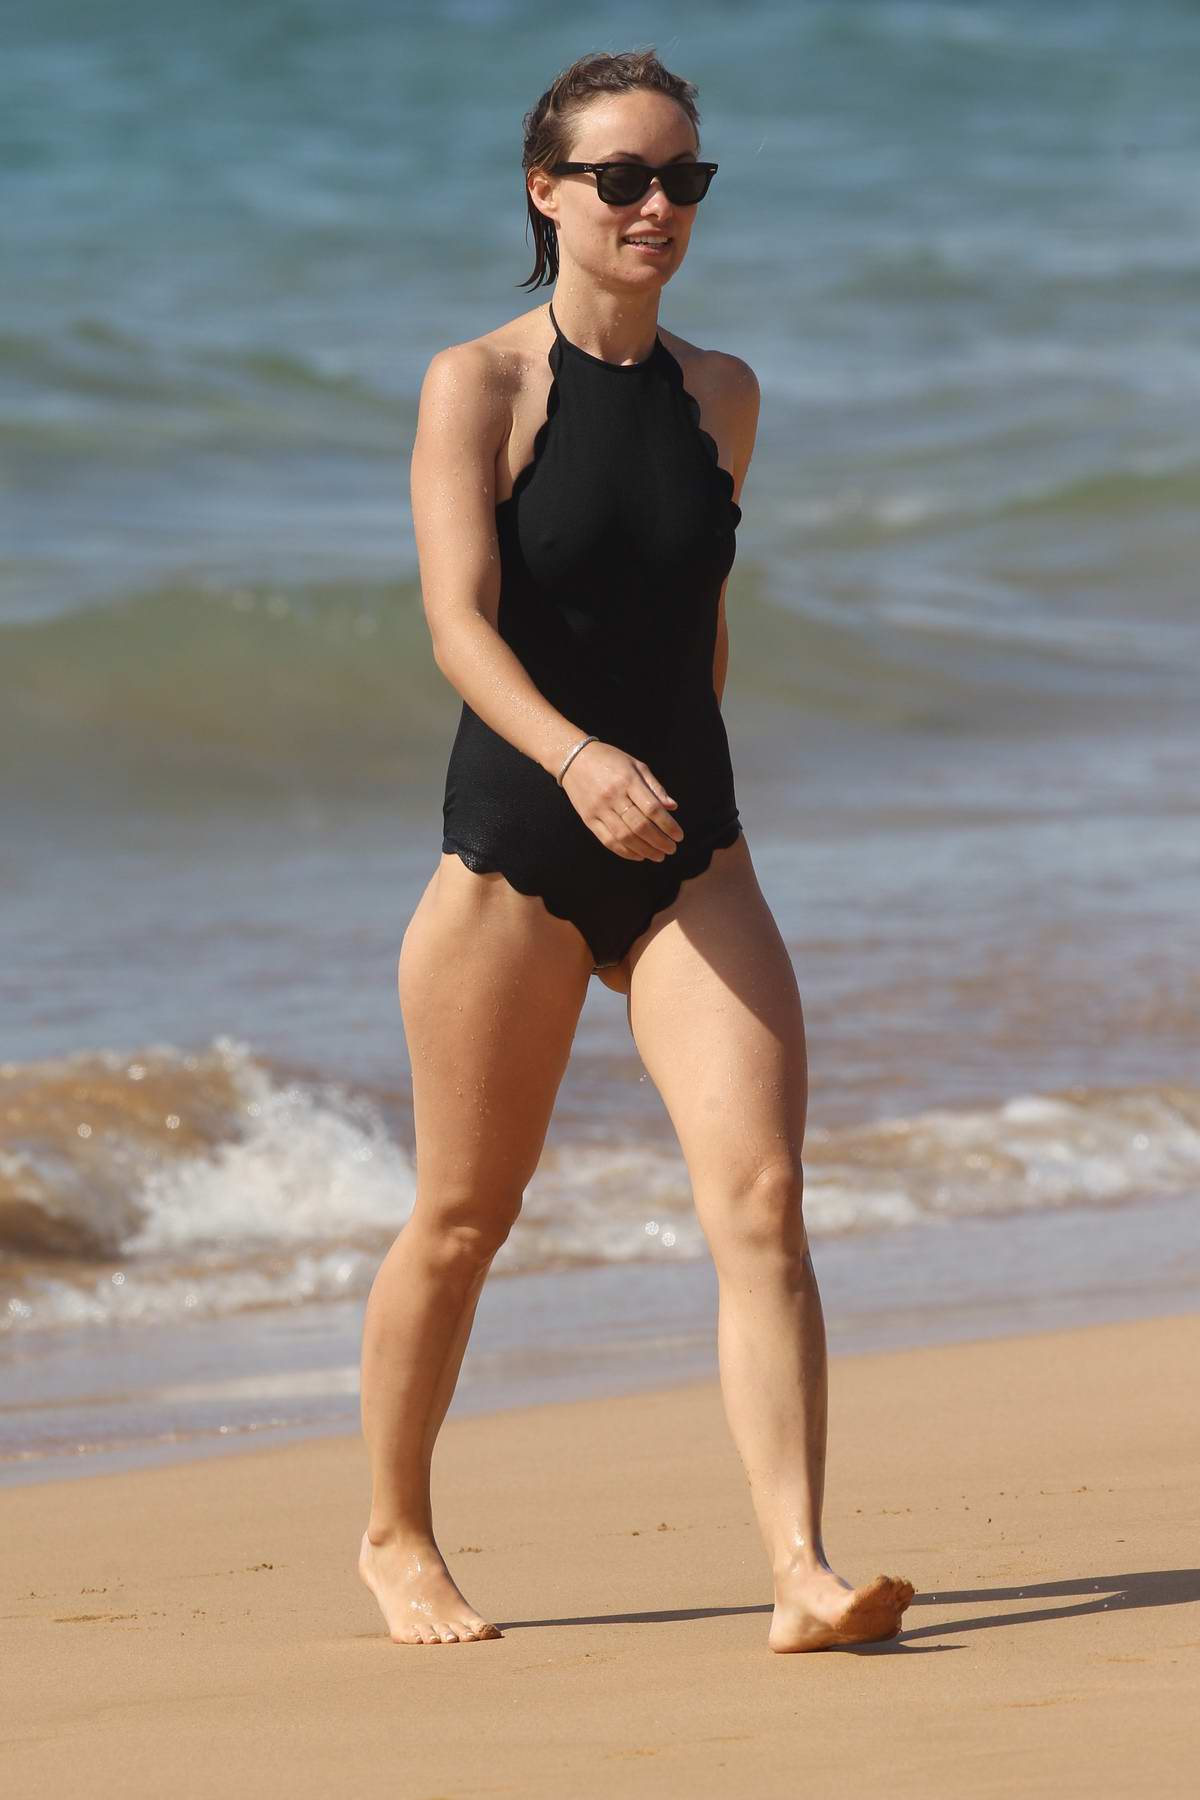 Olivia Wilde in a black swimsuit enjoying the ocean during her extended thanksgiving vacation in Hawaii